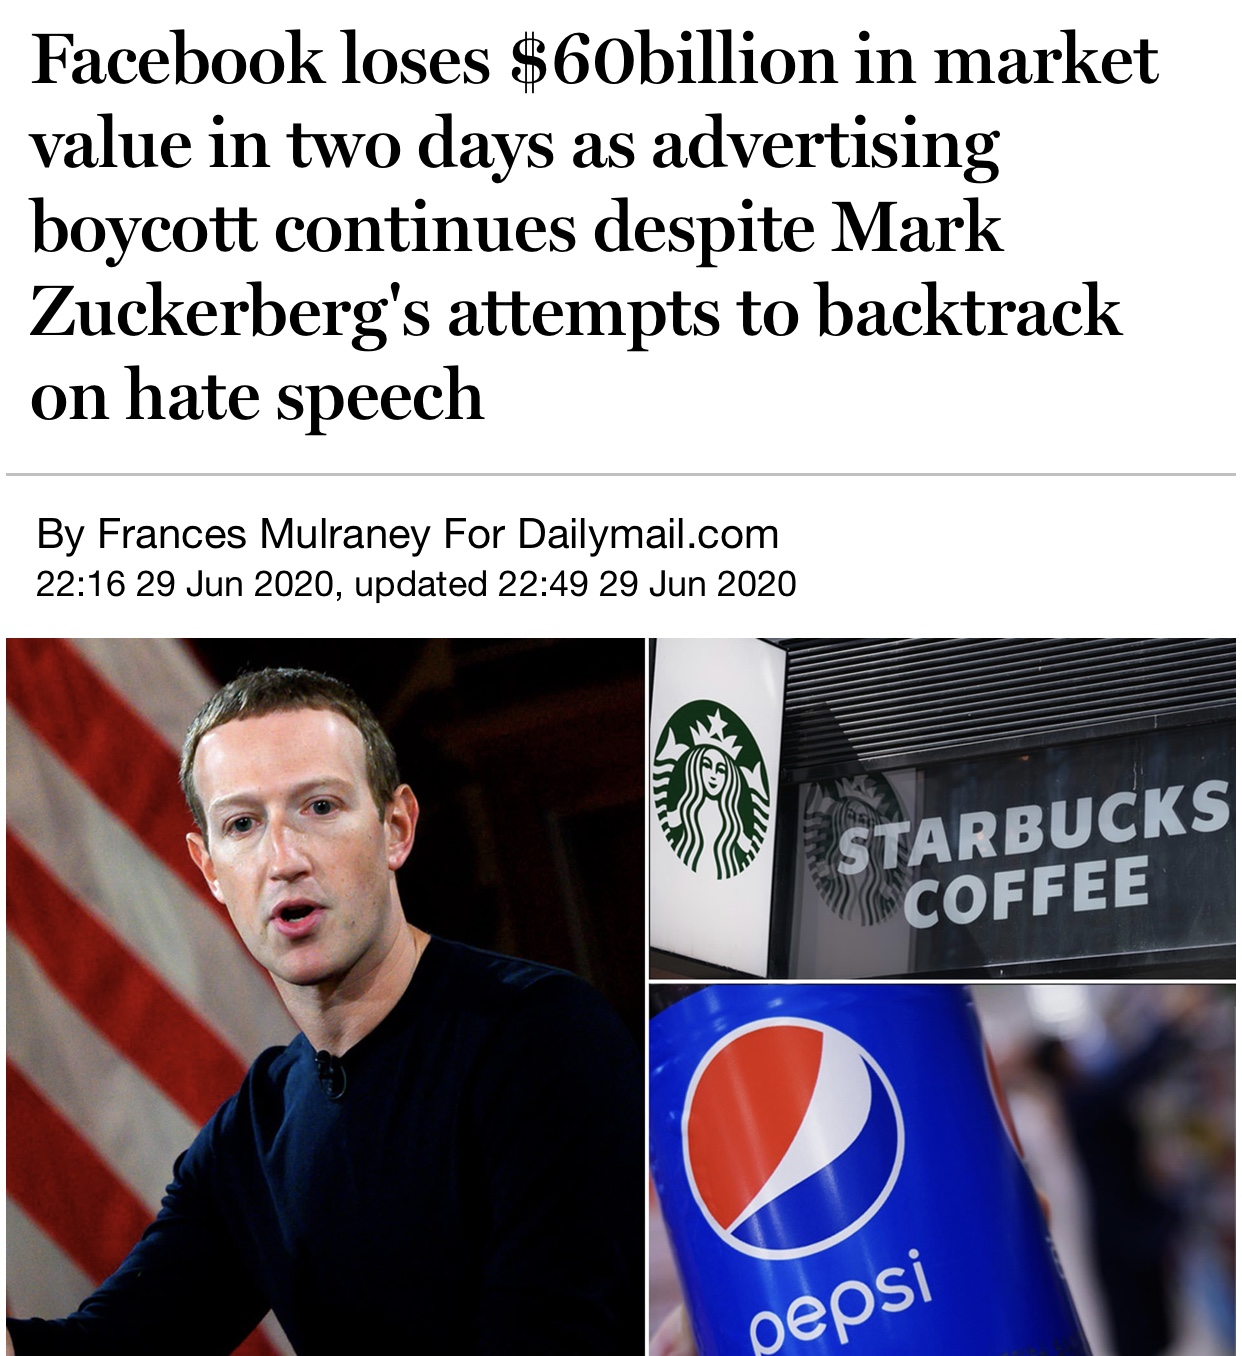 Facebook loses $60 billion in market value in two days as advertising boycott continues despite Mark Zuckerberg's attempts to backtrack on hate speech